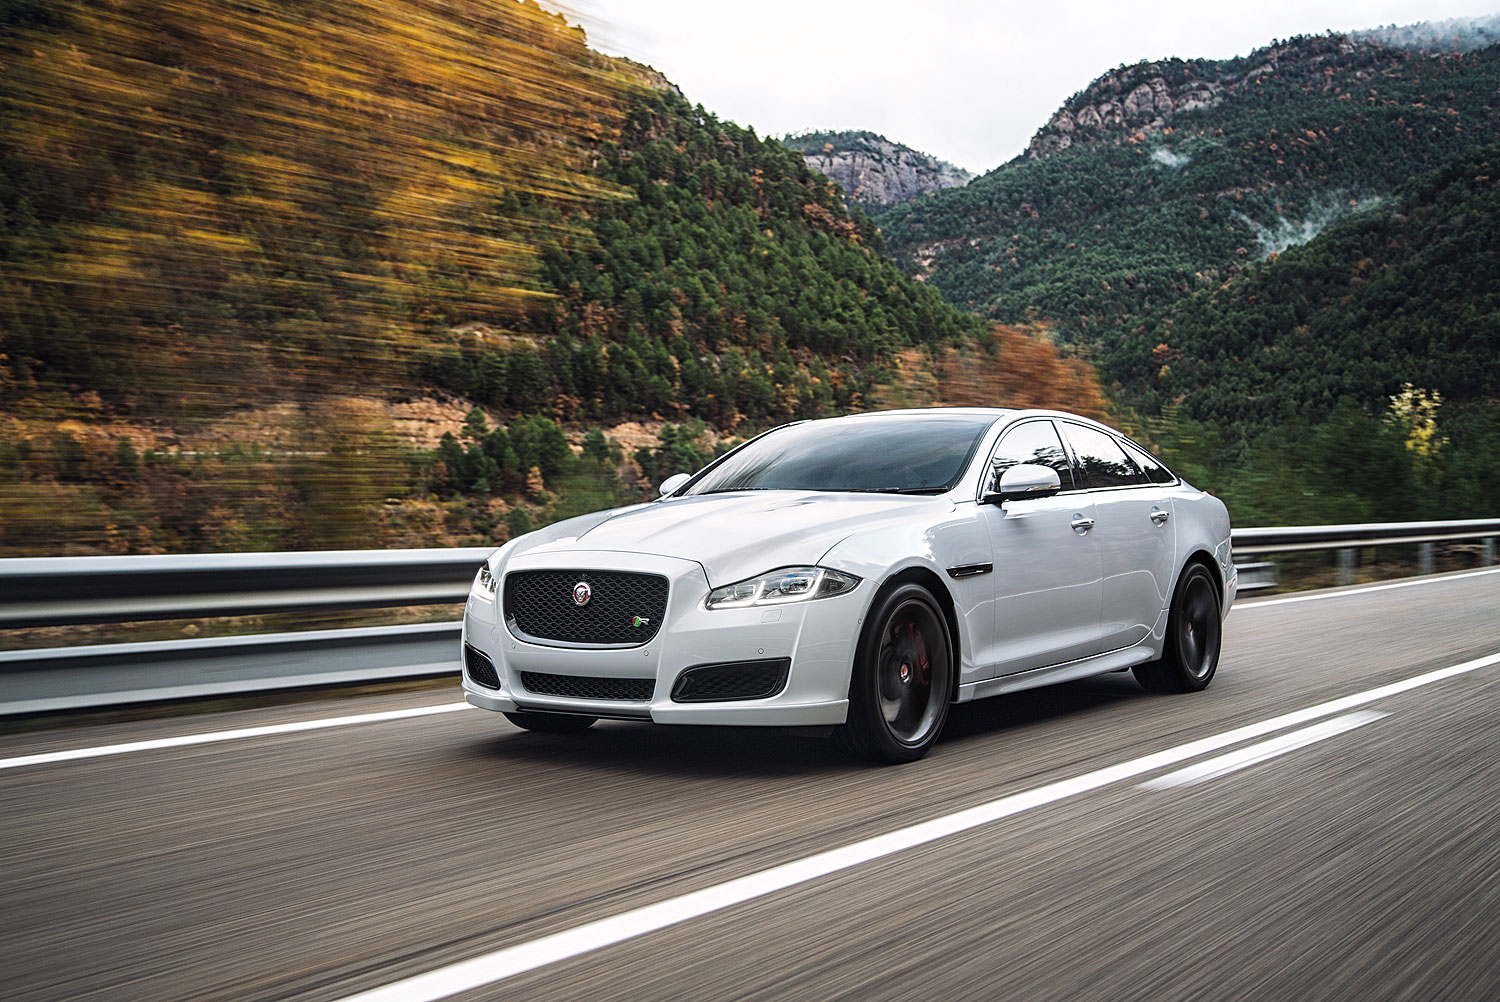 The 2016 model XJ, Jaguar's all-aluminium luxury saloon, is now even more desirable than ever